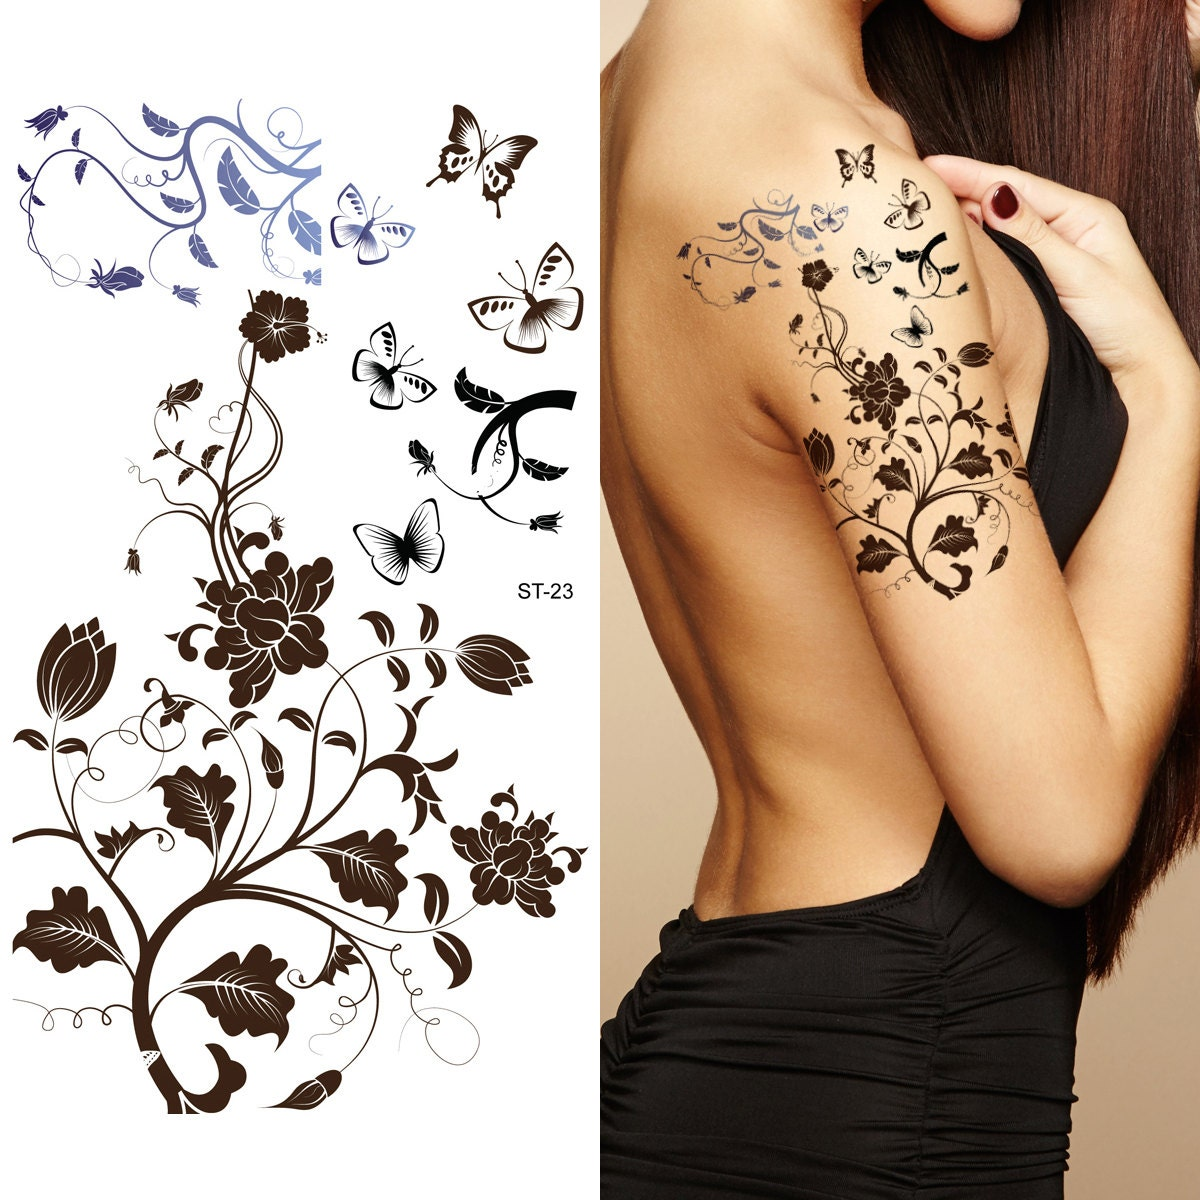 supperb tempor re tattoos schwarz stammes blumen tattoos etsy. Black Bedroom Furniture Sets. Home Design Ideas